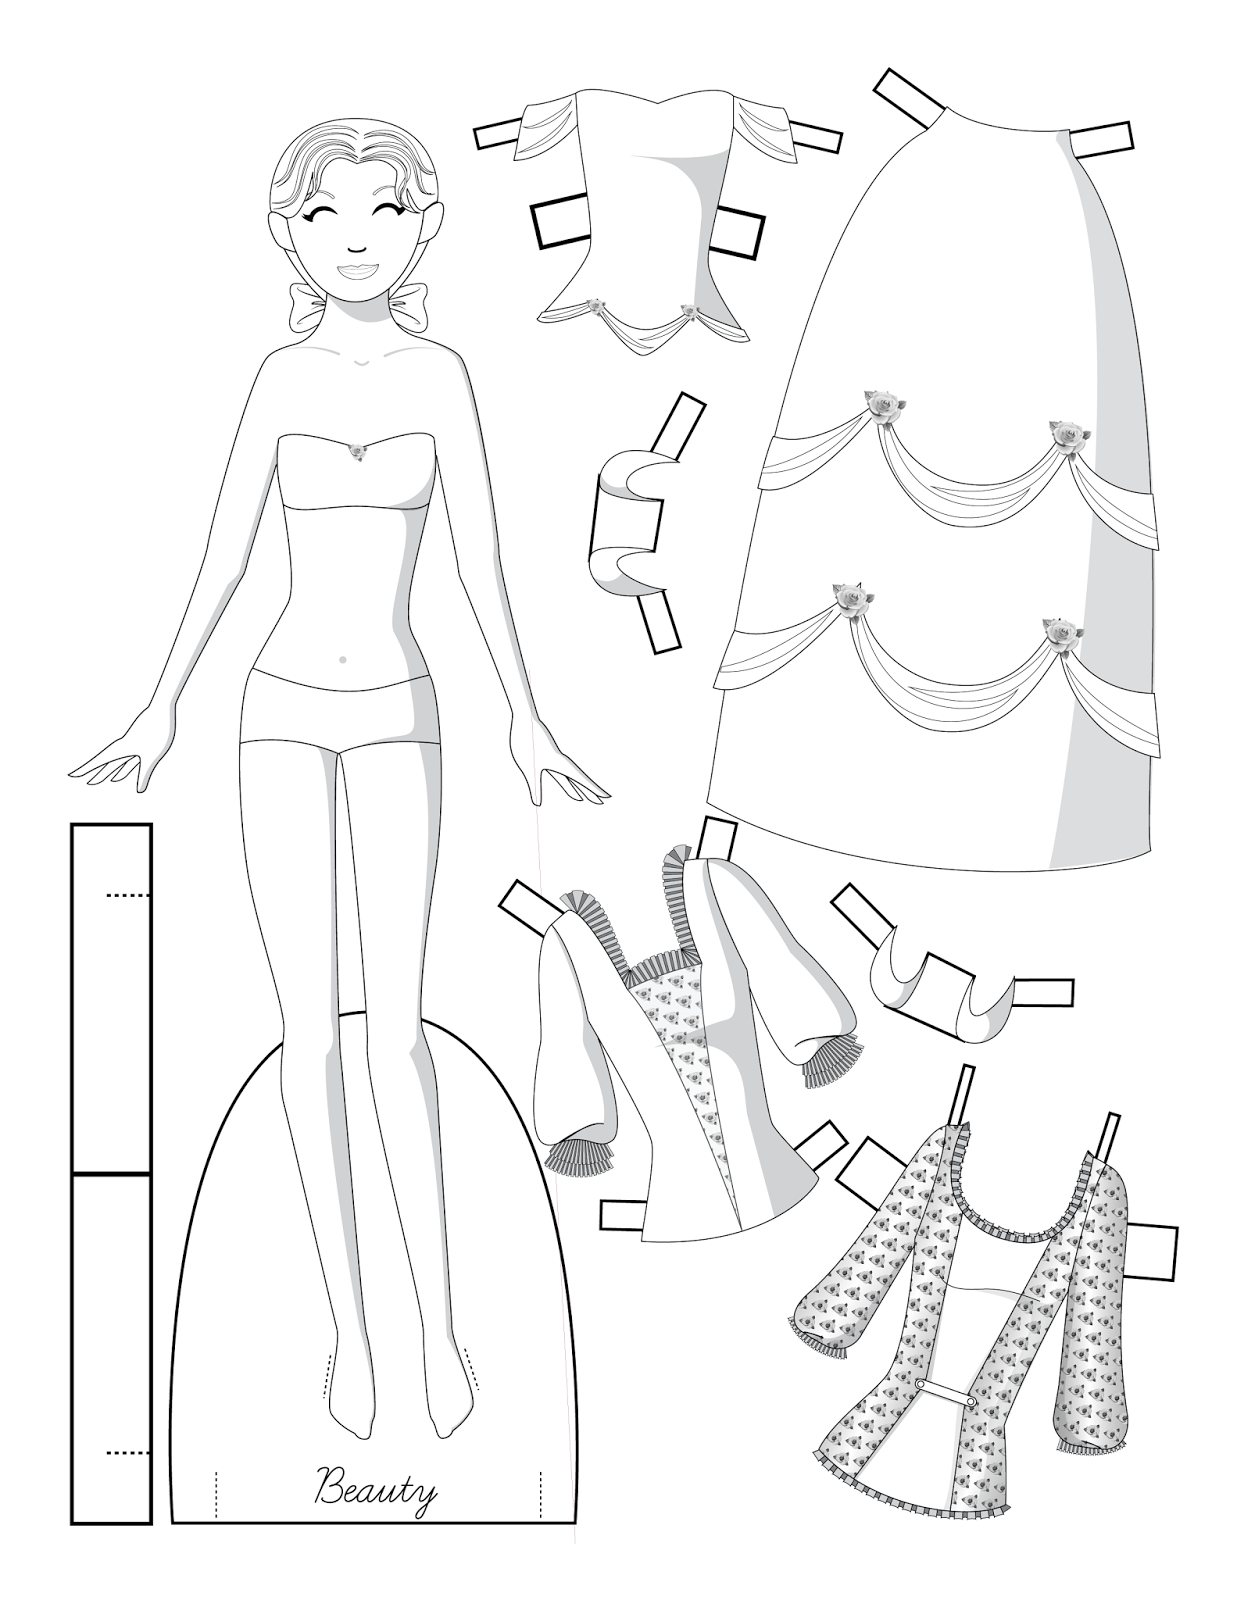 fairy tale paper dolls to color paper dolls fairy tales Future Games fairy tale paper dolls to color